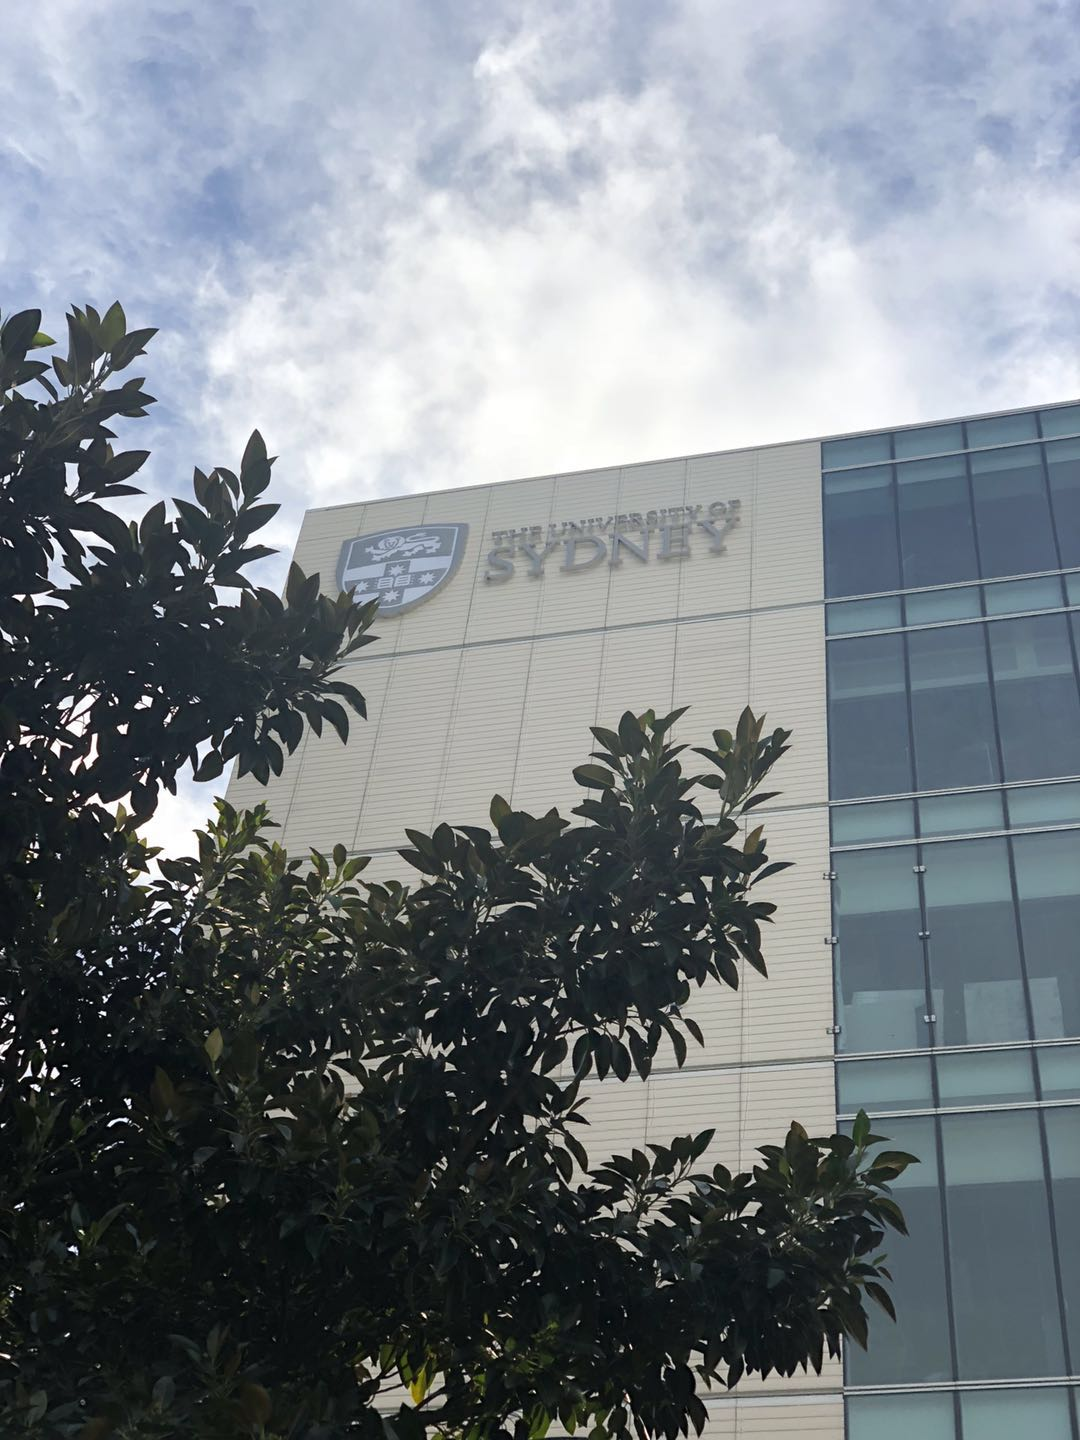 USYD logo Beside overpass